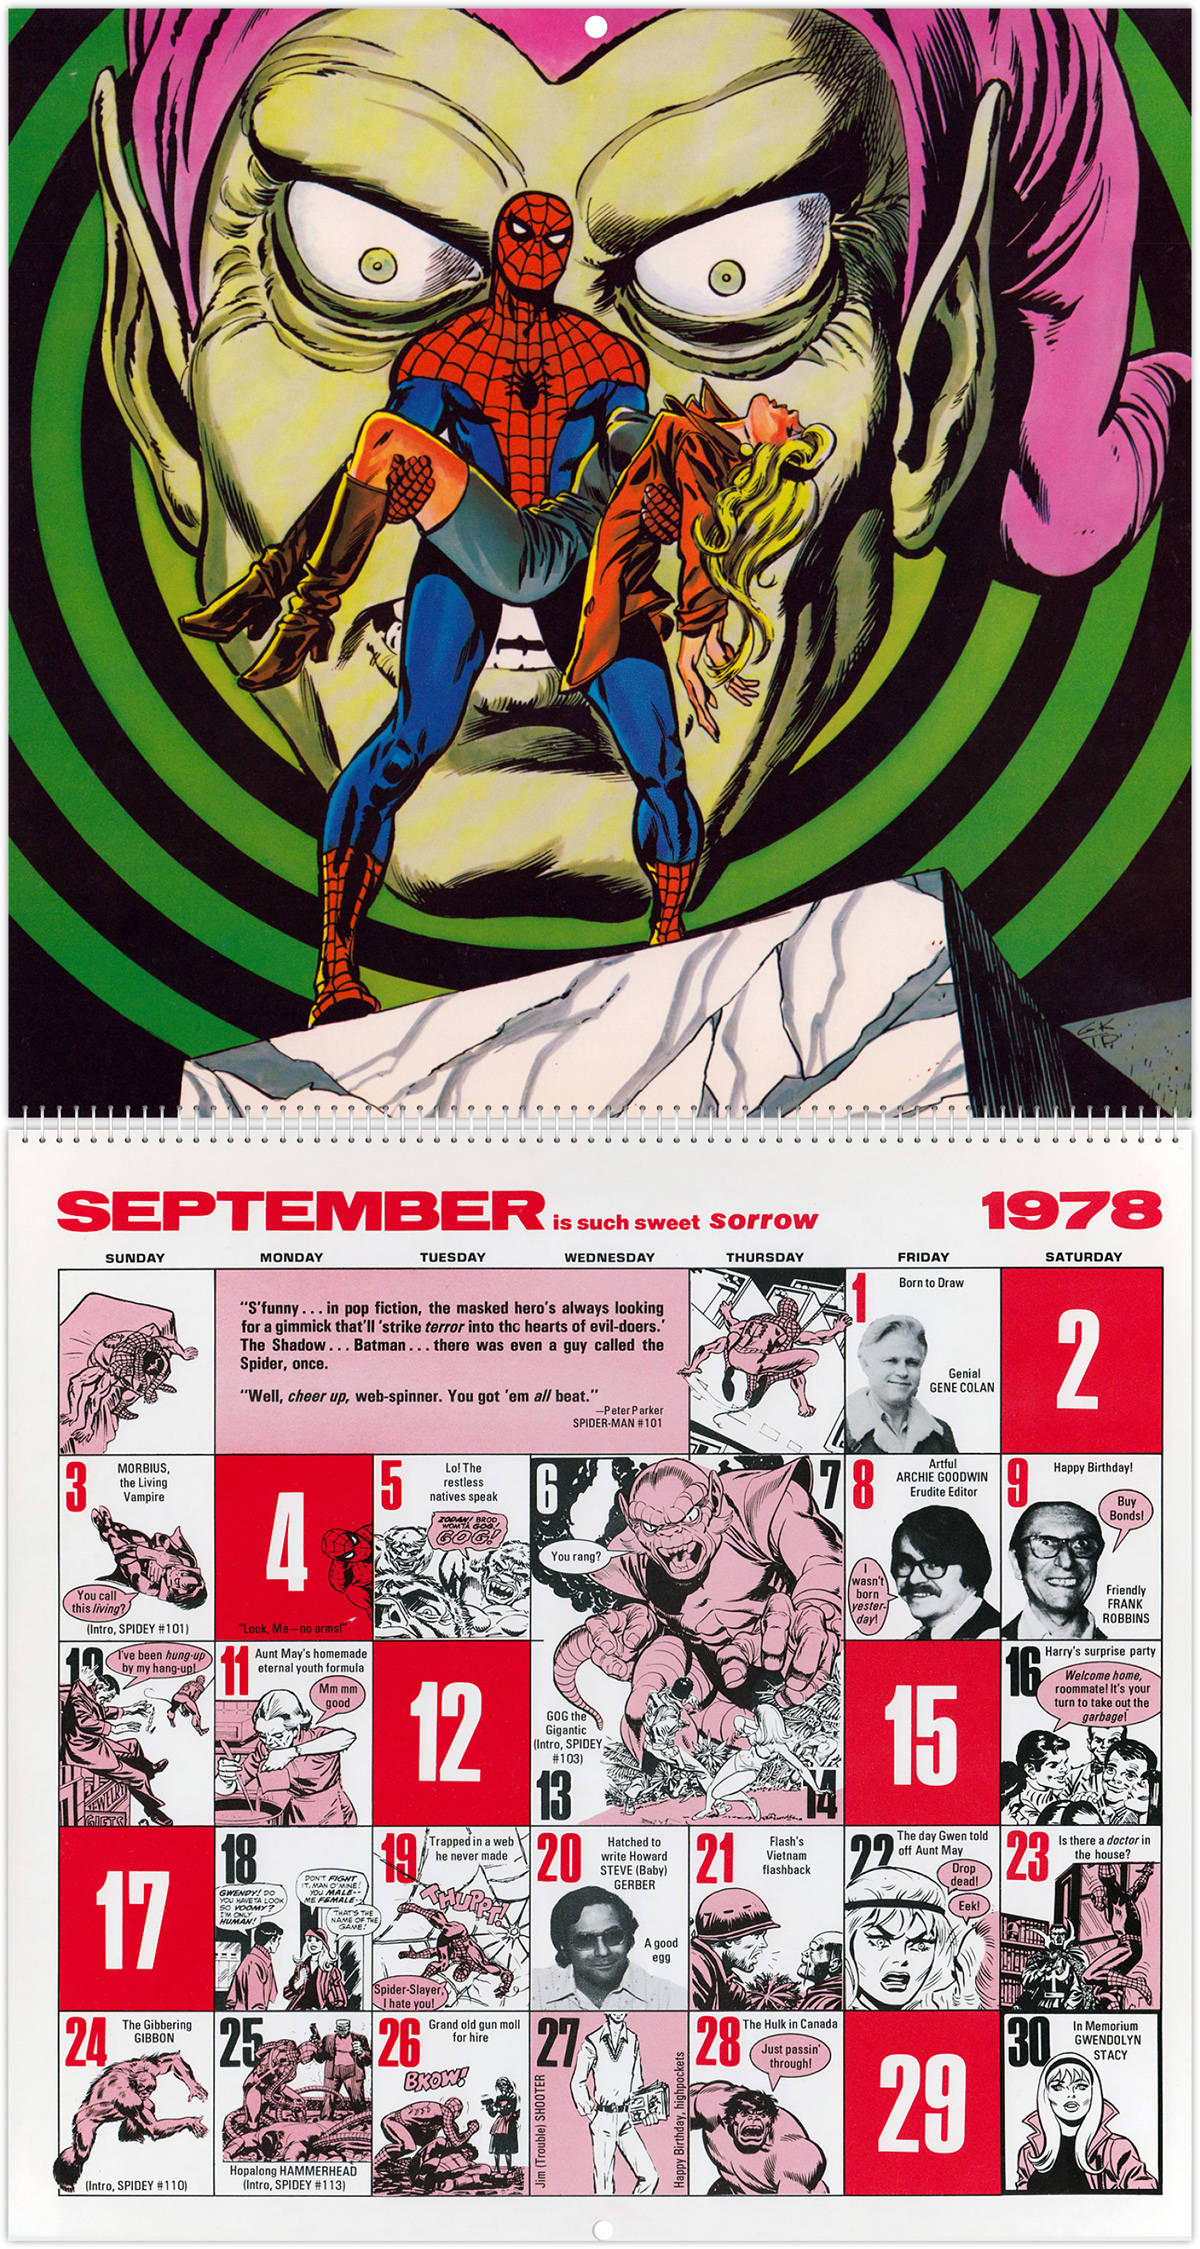 1978 Calendar September.The Amazing Spider Man Mighty Marvel Comics Calendar 1978 Tain T